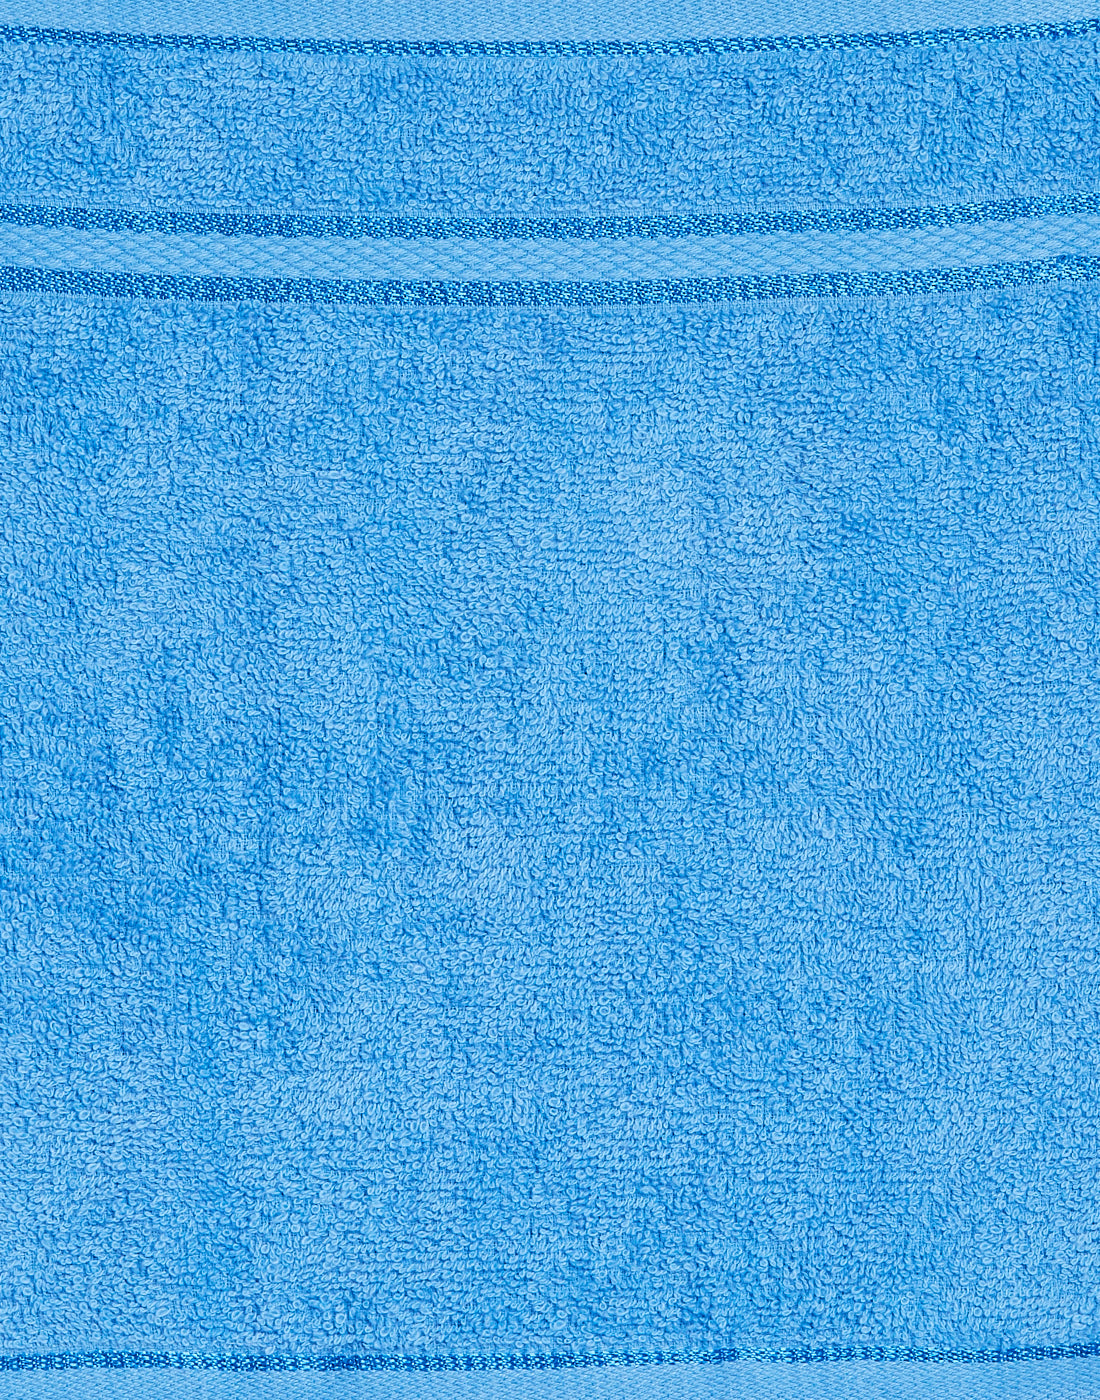 Octave Royal Blue Set of 4 Cotton Face Towels